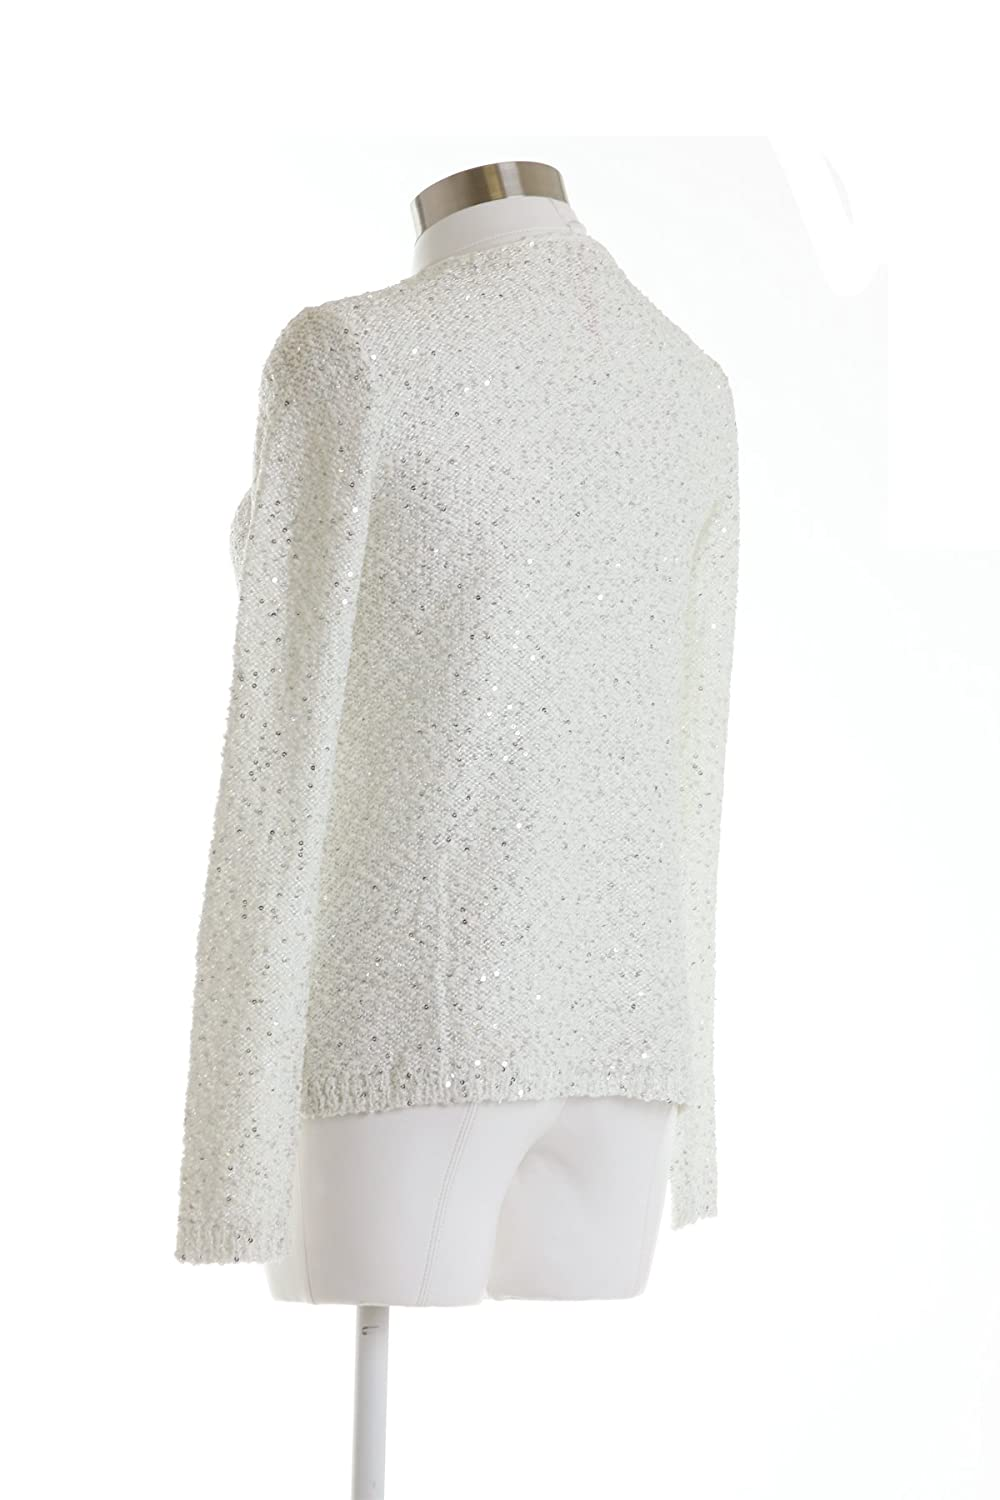 VIV Collection Women's Sequin Cardigan